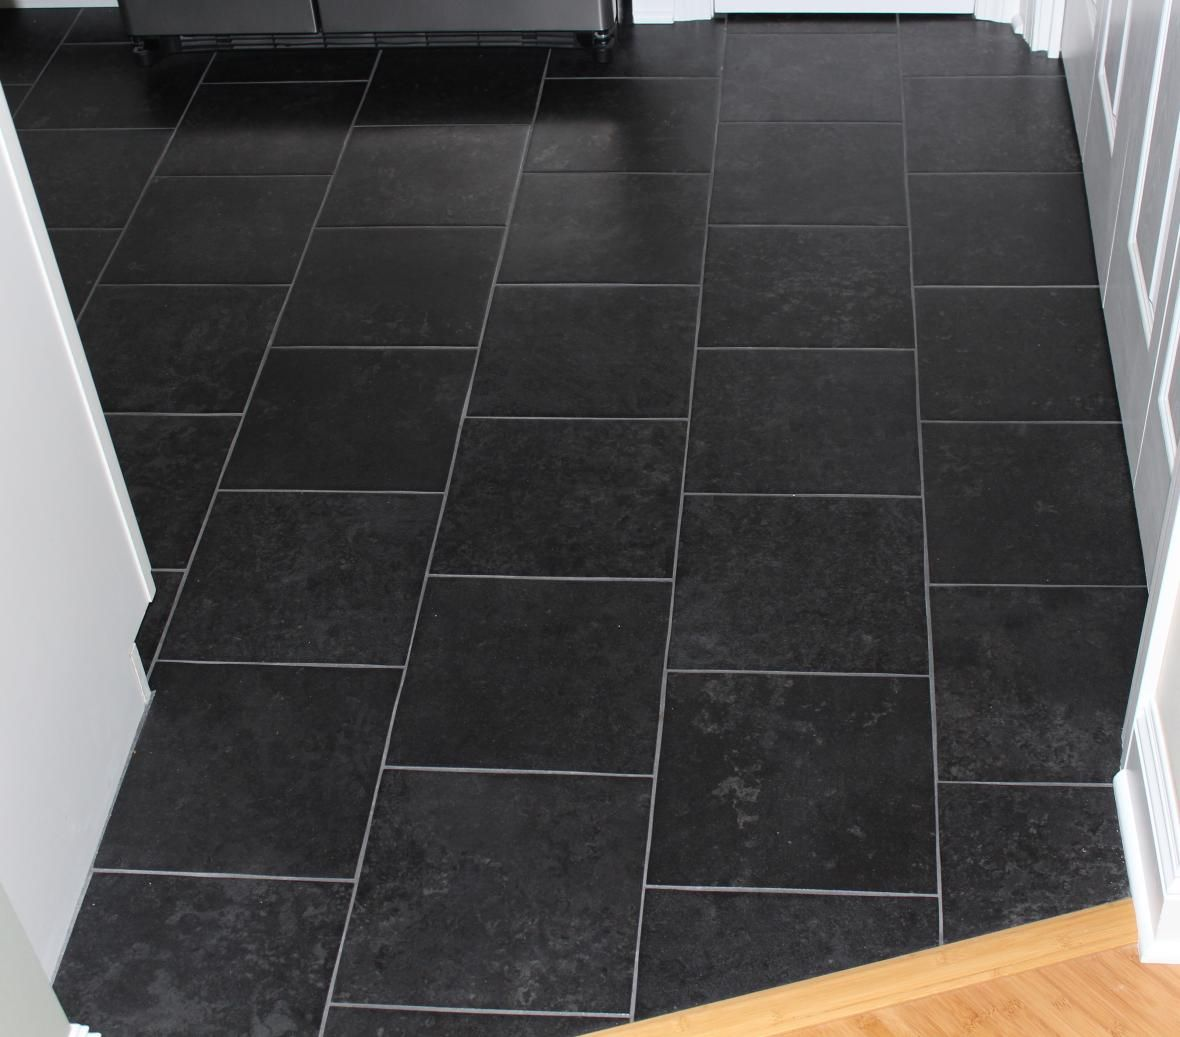 Kitchen floor tiles black photo 3 home decor pinterest kitchen floor tiles black photo 3 dailygadgetfo Gallery